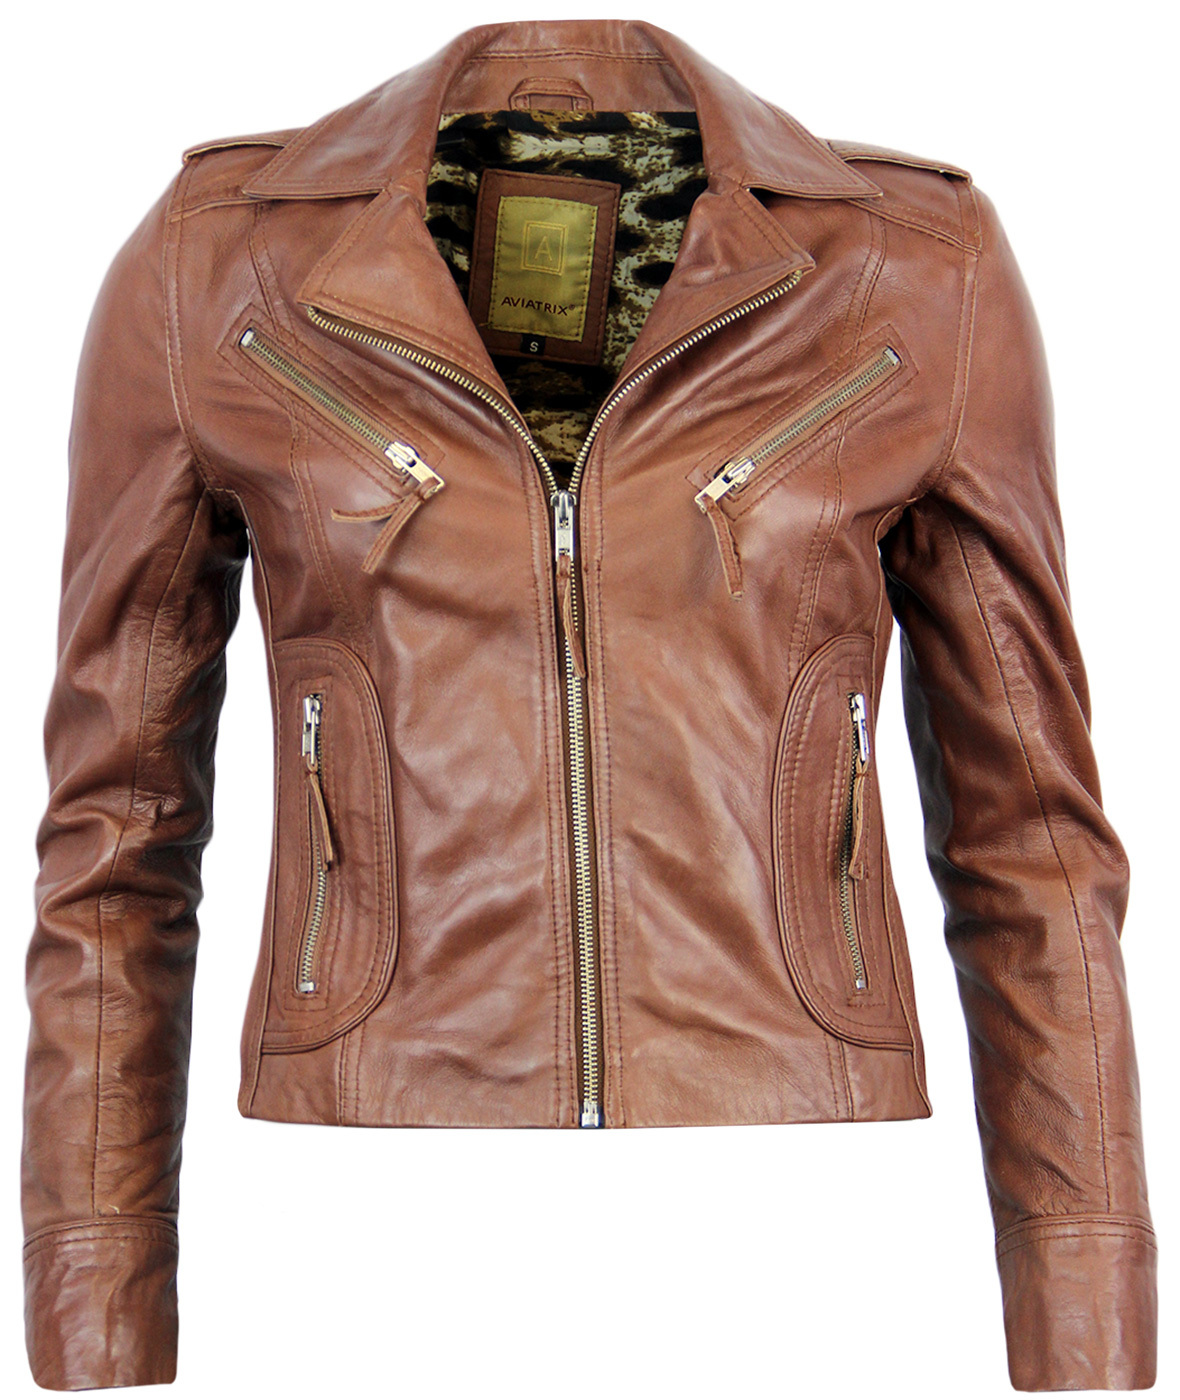 Womens Retro 1970s Vintage Leather Biker Jacket